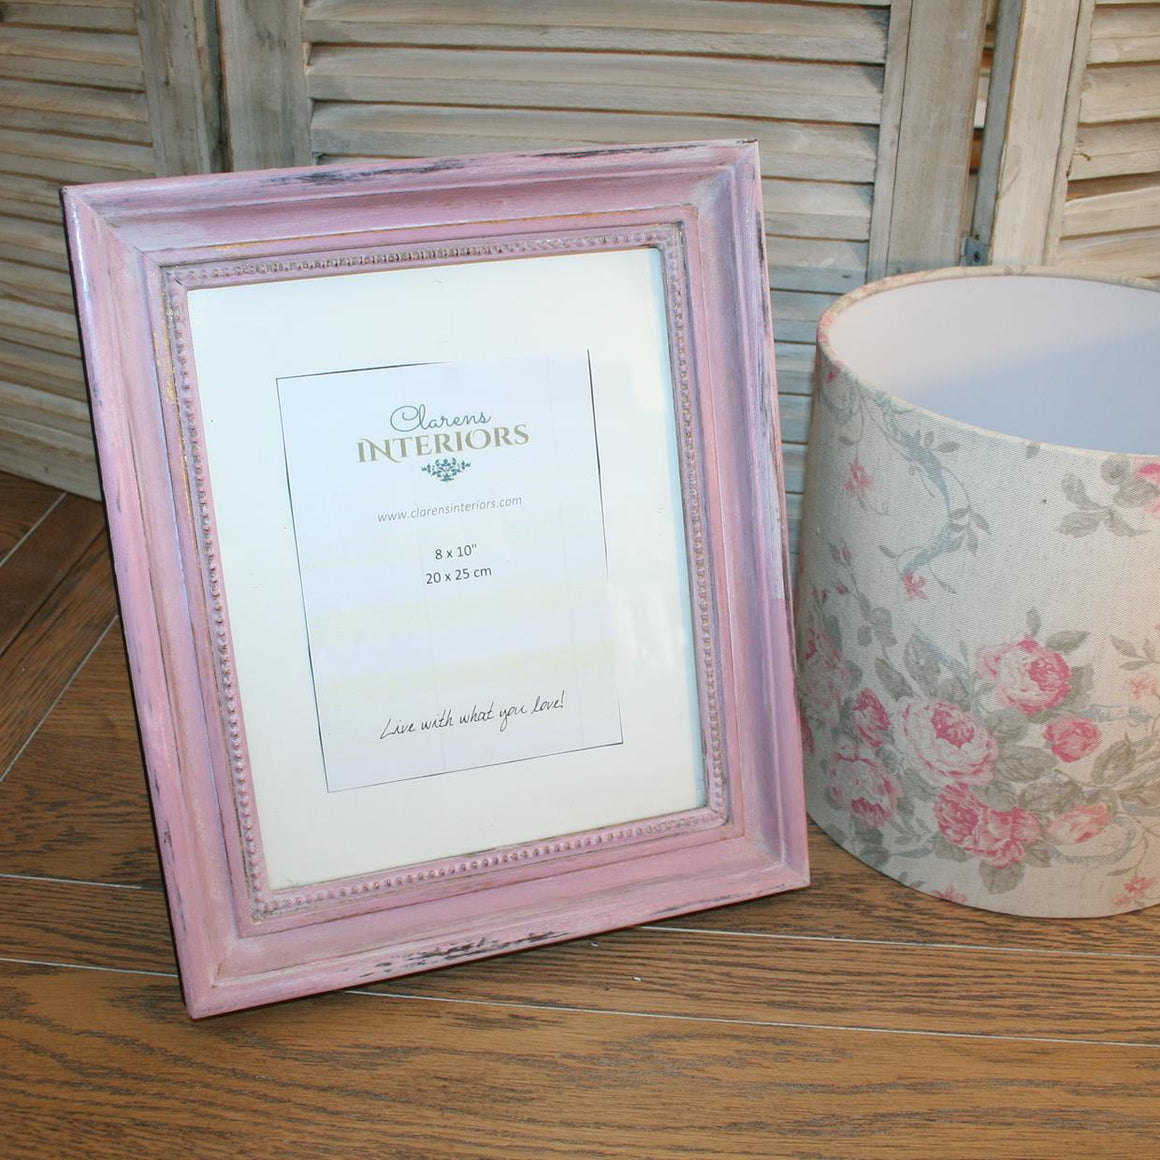 Henrietta Photo frame - 8 x 10